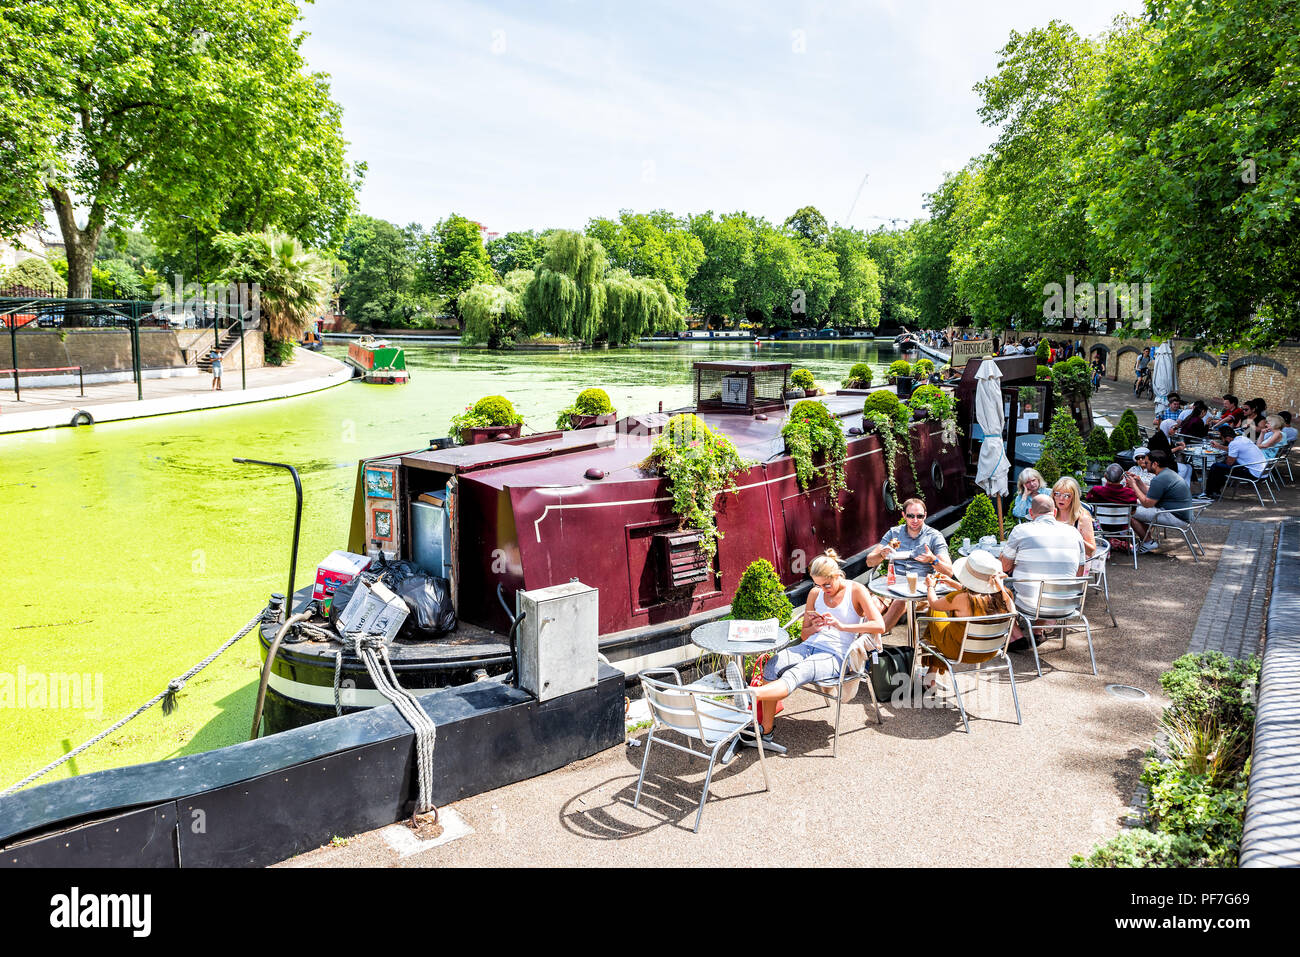 London, UK - June 24, 2018: Neighborhood district of Little Venice Italy, sidewalk canal cafe restaurant traditional style boat, people eating during  - Stock Image